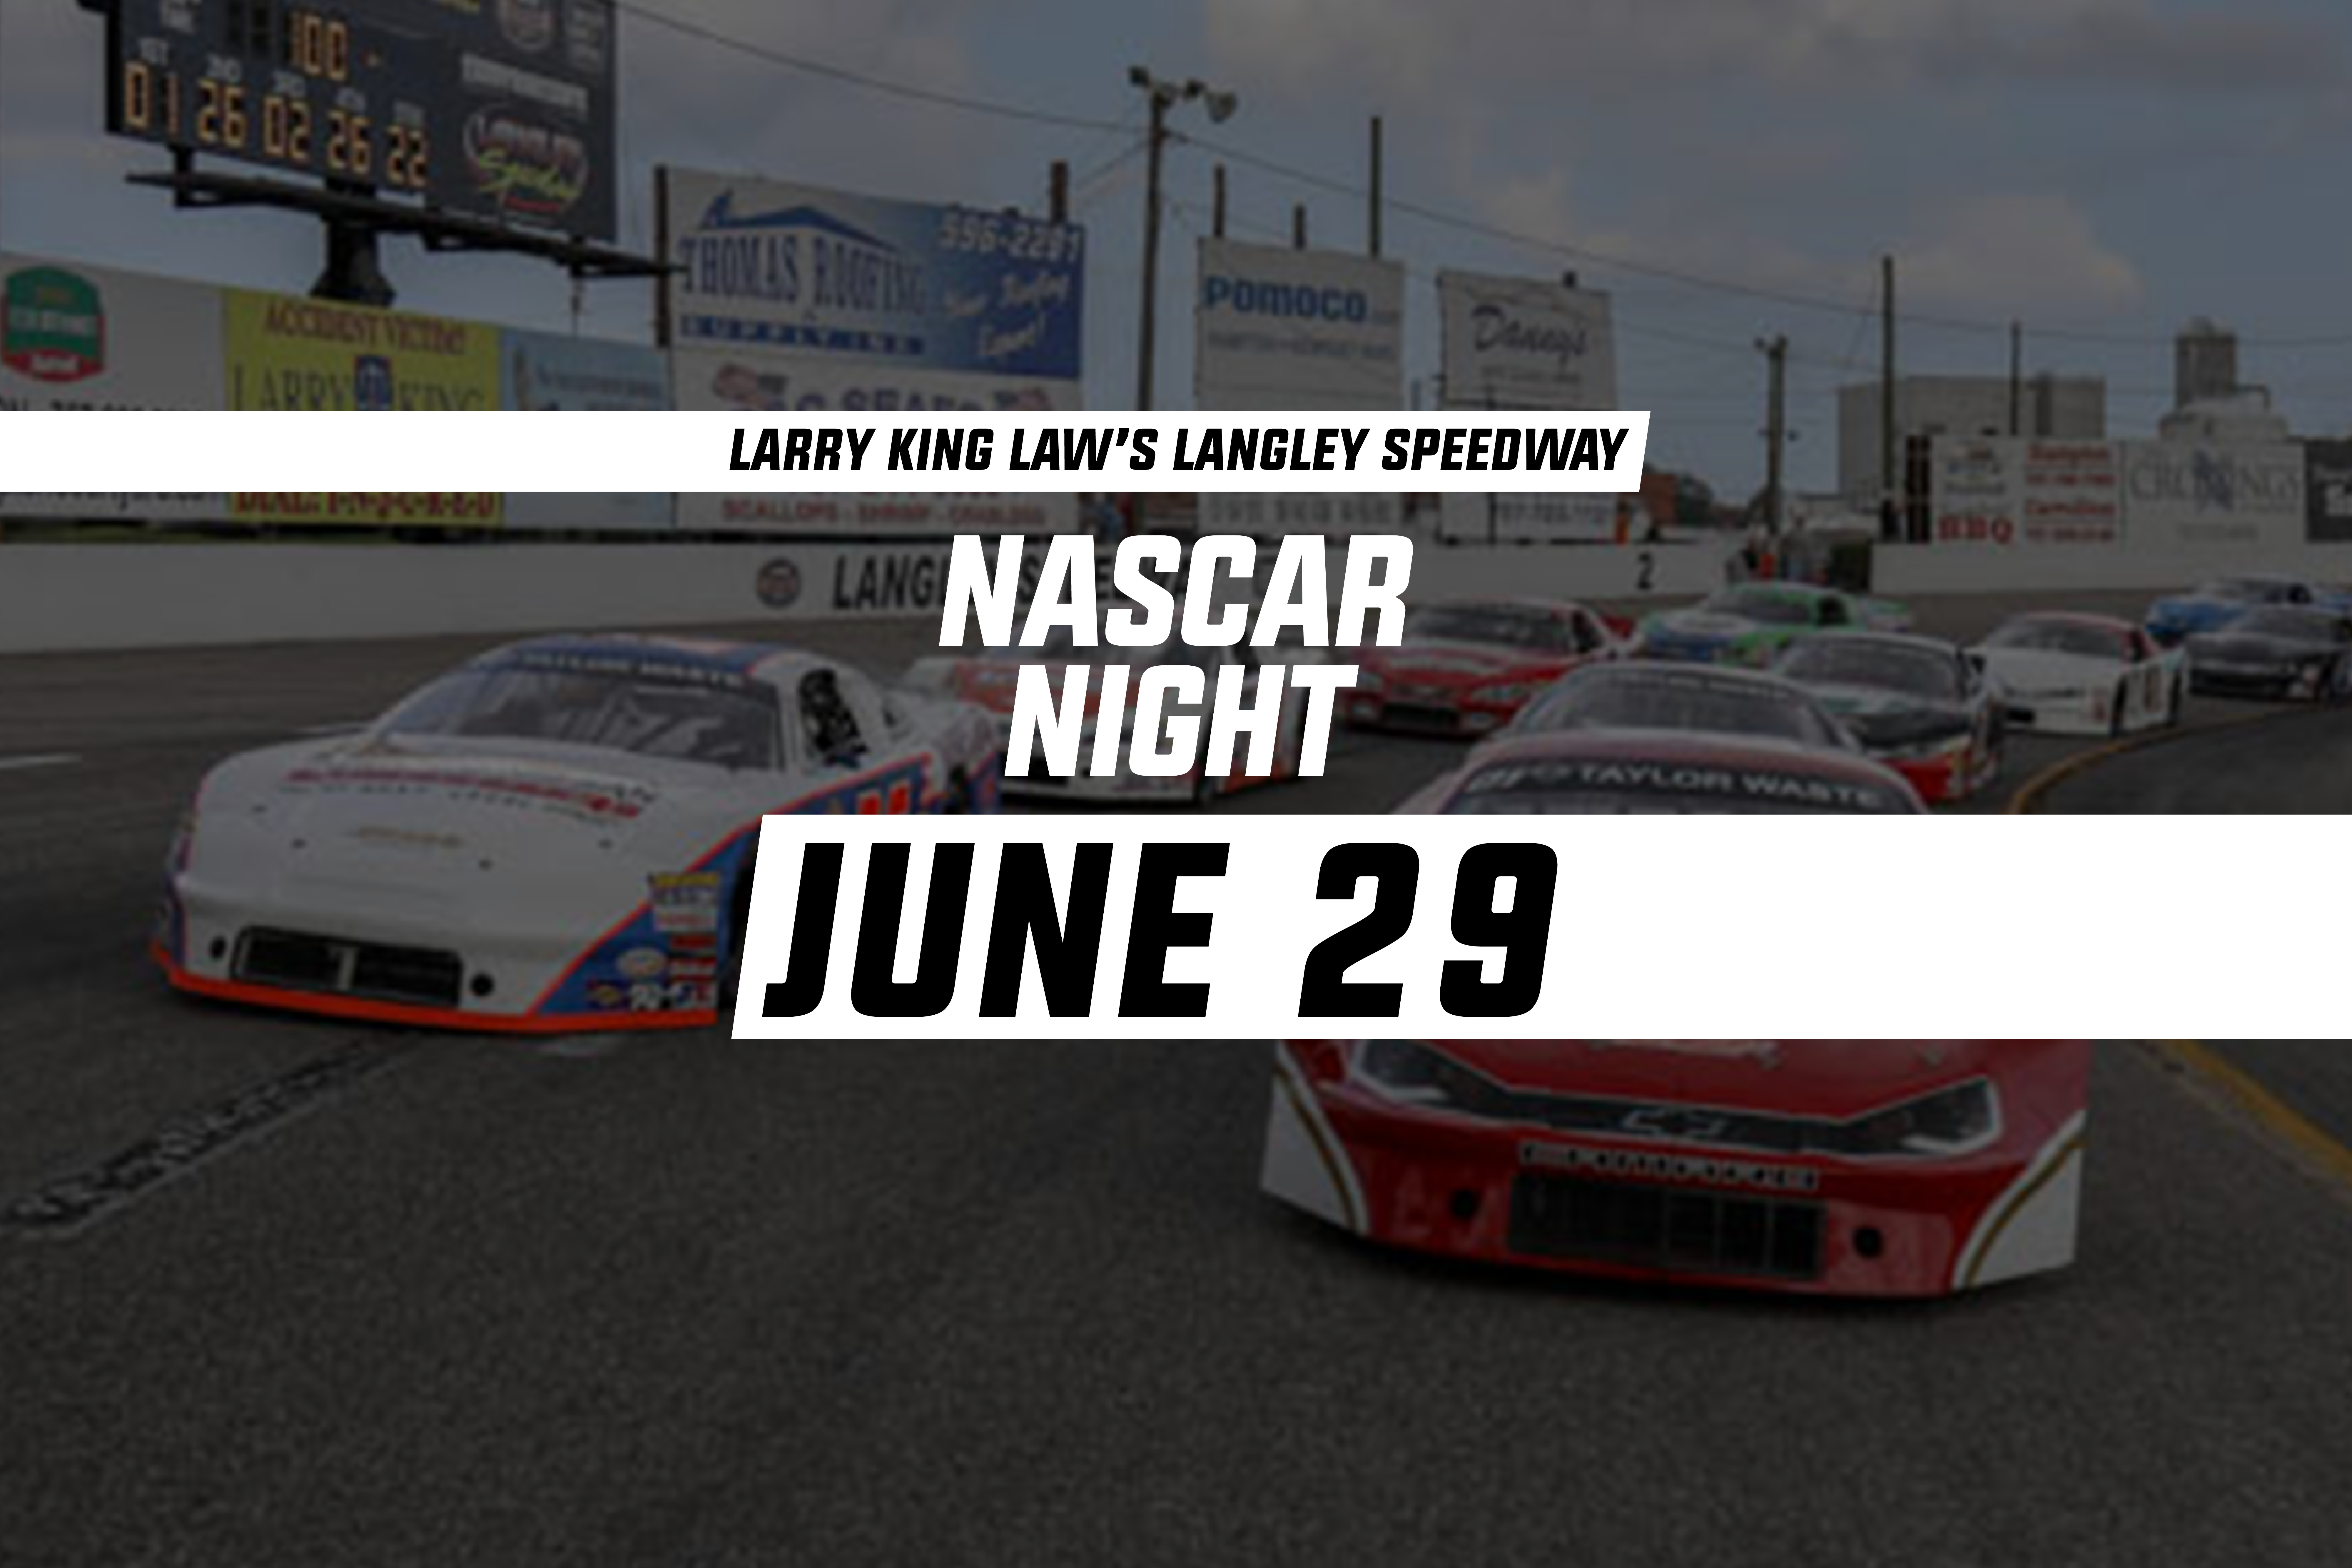 Nascar Night Race Day Schedule Larry King Law S Langley Speedway